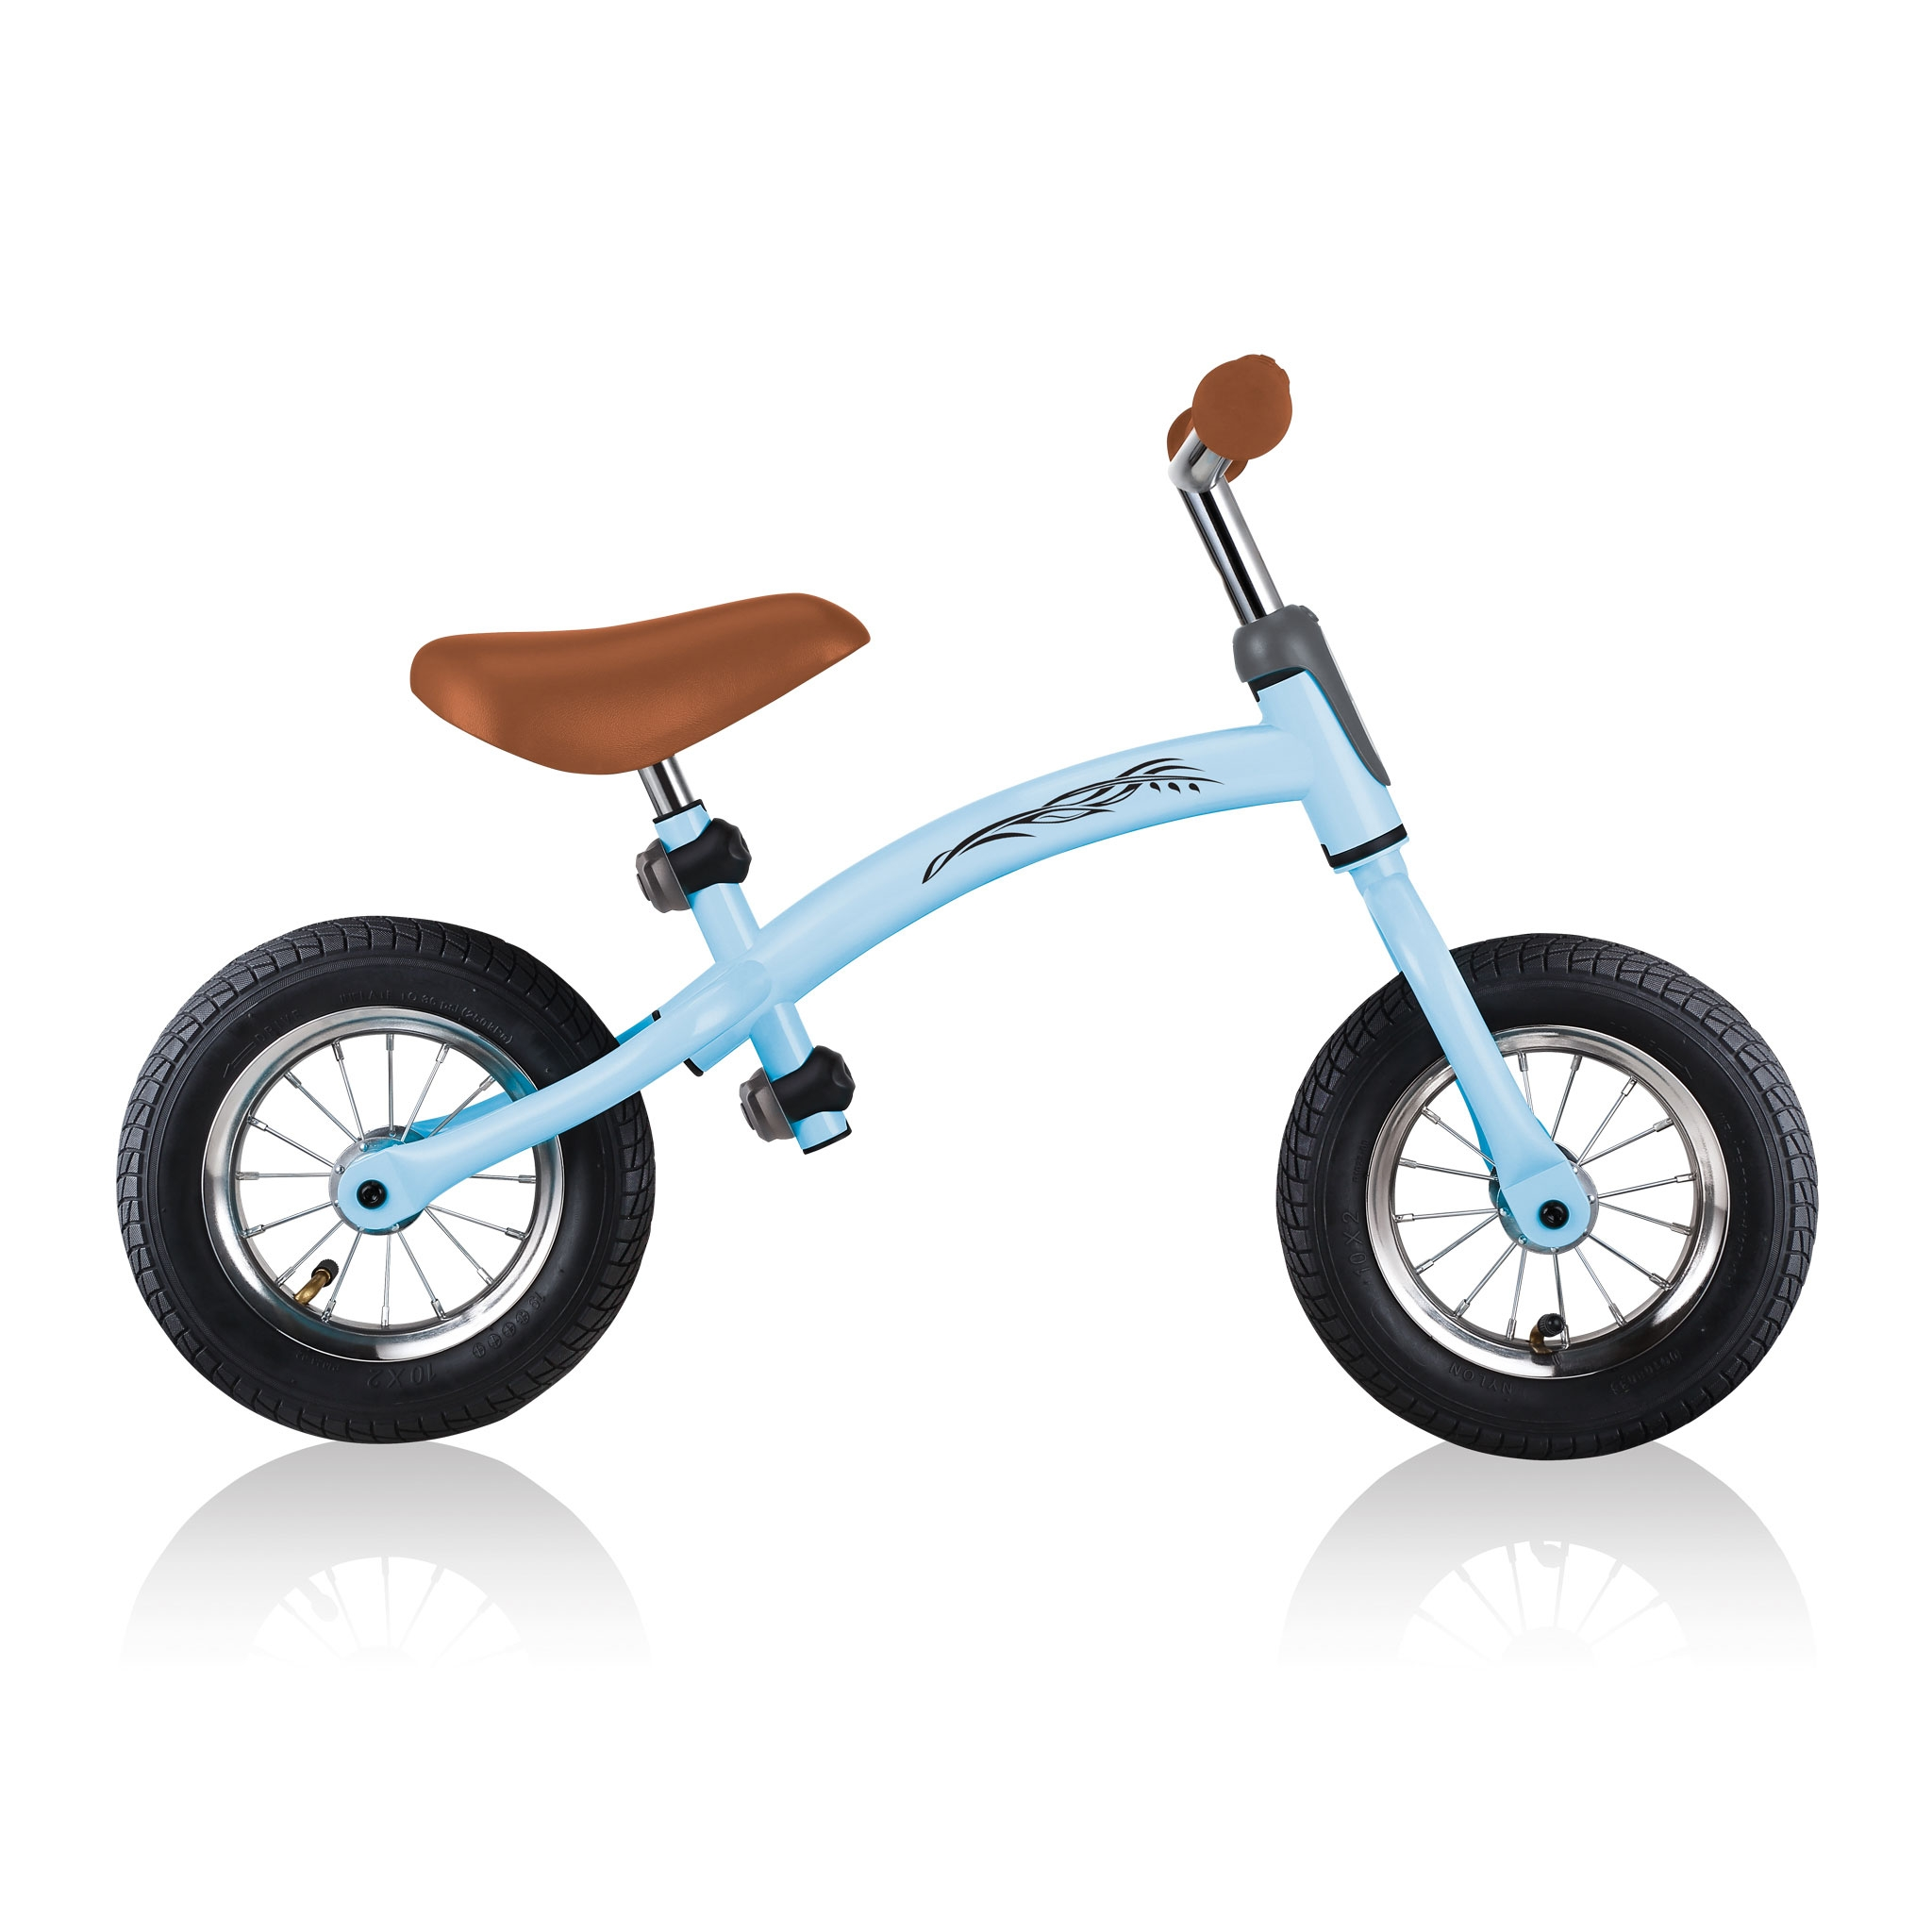 GO-BIKE-AIR-toddler-balance-bike-with-robust-steel-frame-and-shock-absorbing-rubber-tyres_pastel-blue